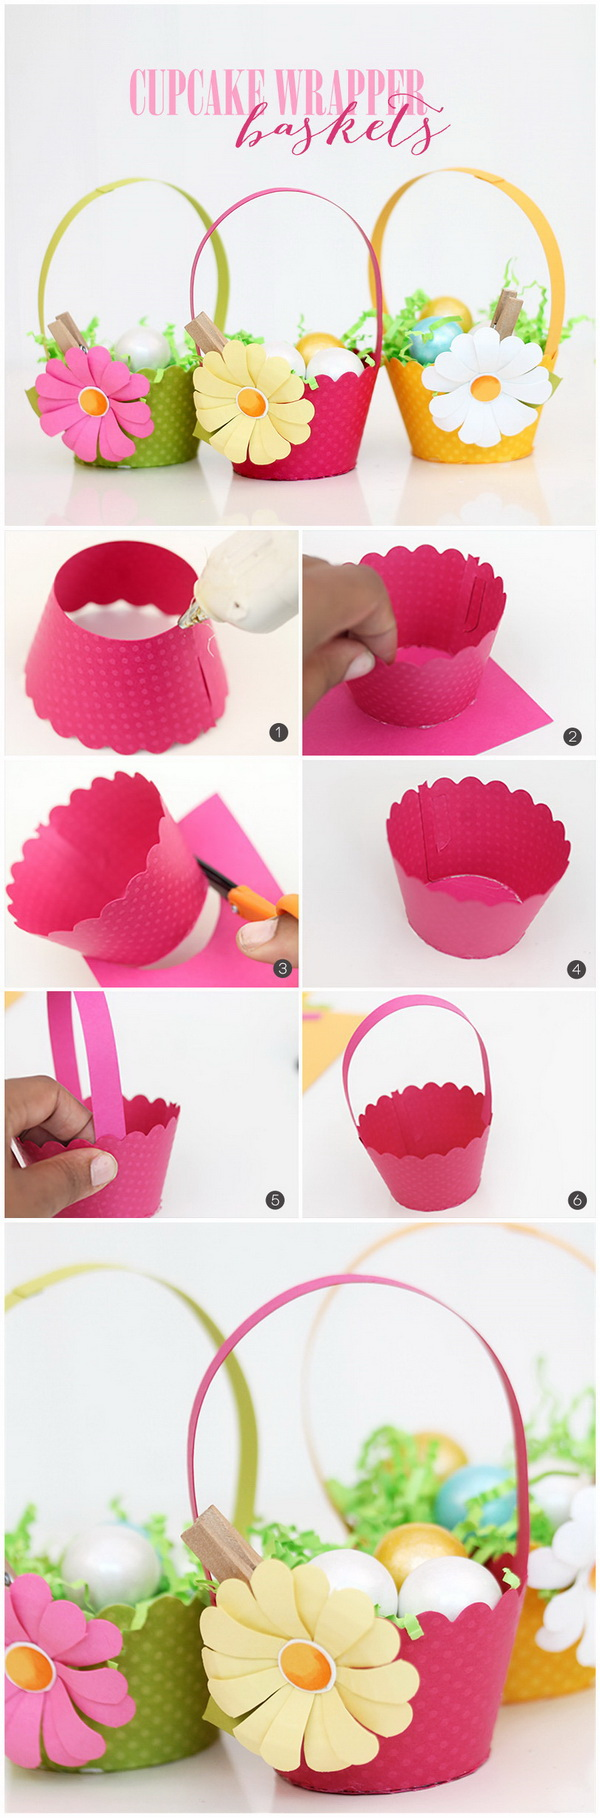 DIY Easter Decoration Ideas: DIY Cupcake Wrapper Easter Baskets.